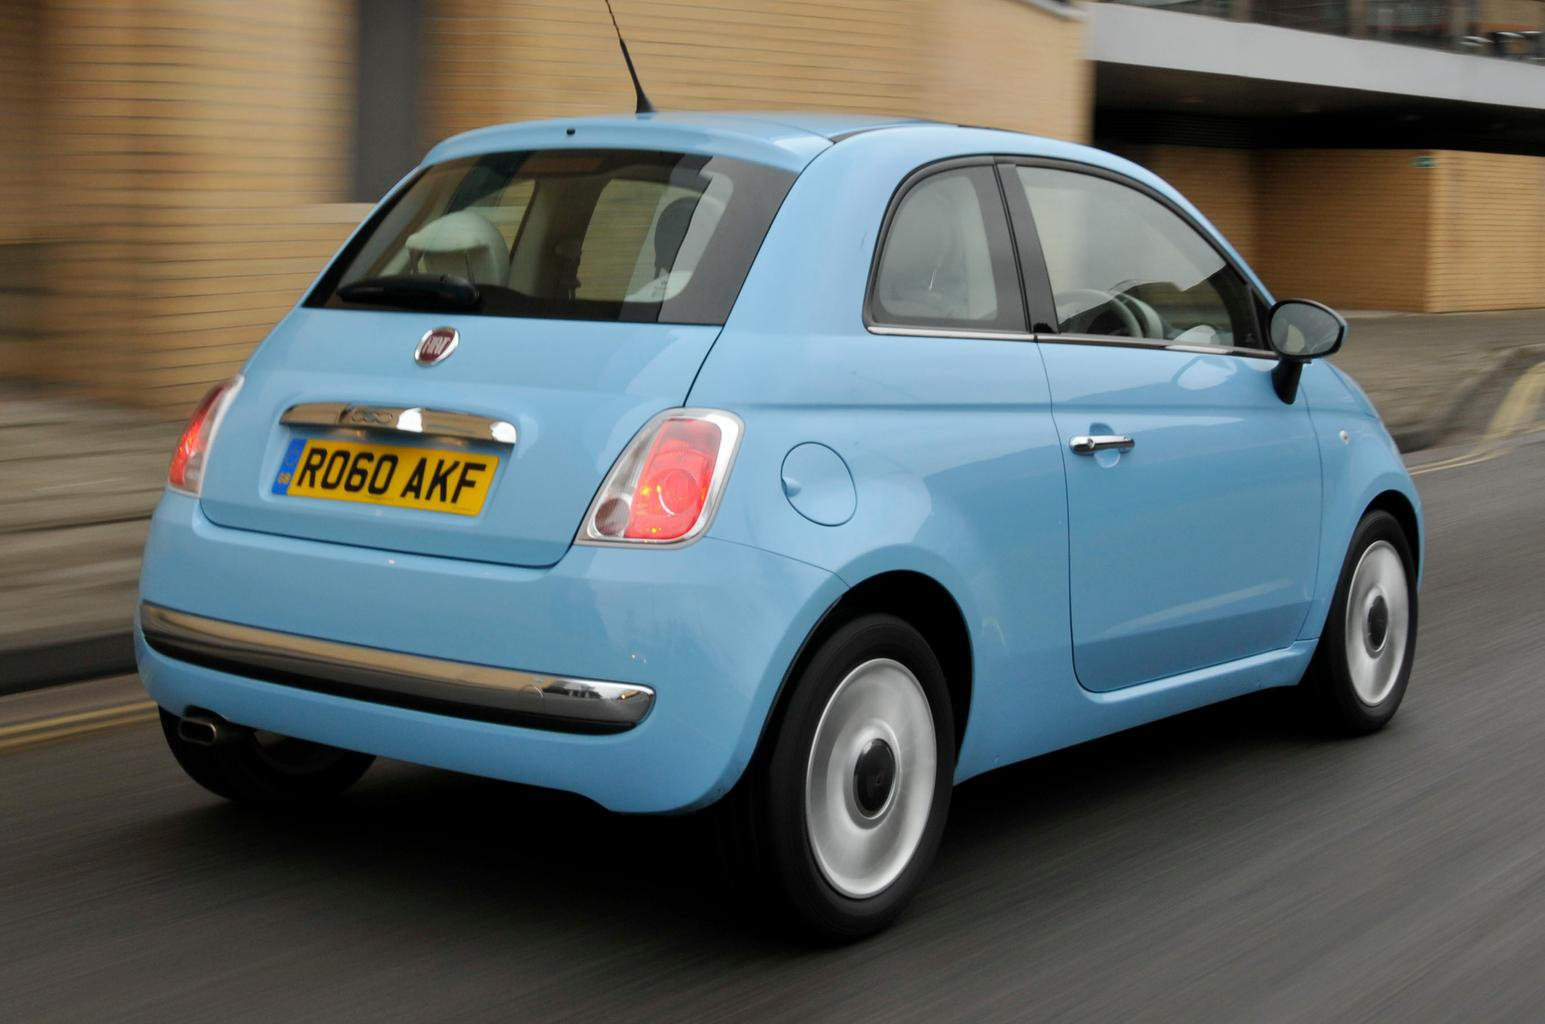 Used Test Smart Small Cars Fiat 500 Vs Honda Jazz Vs Mini One Vs